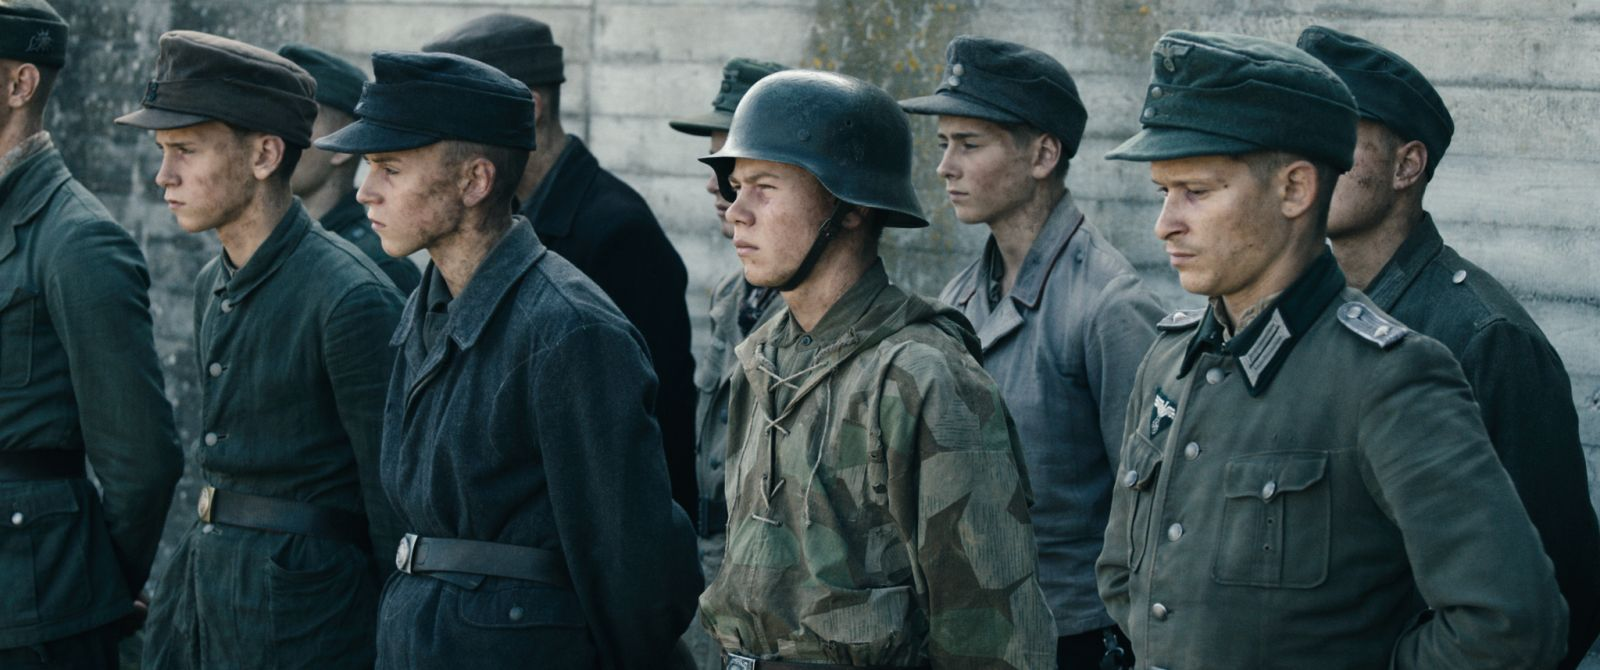 Land of Mine: un'immagine tratta dal film